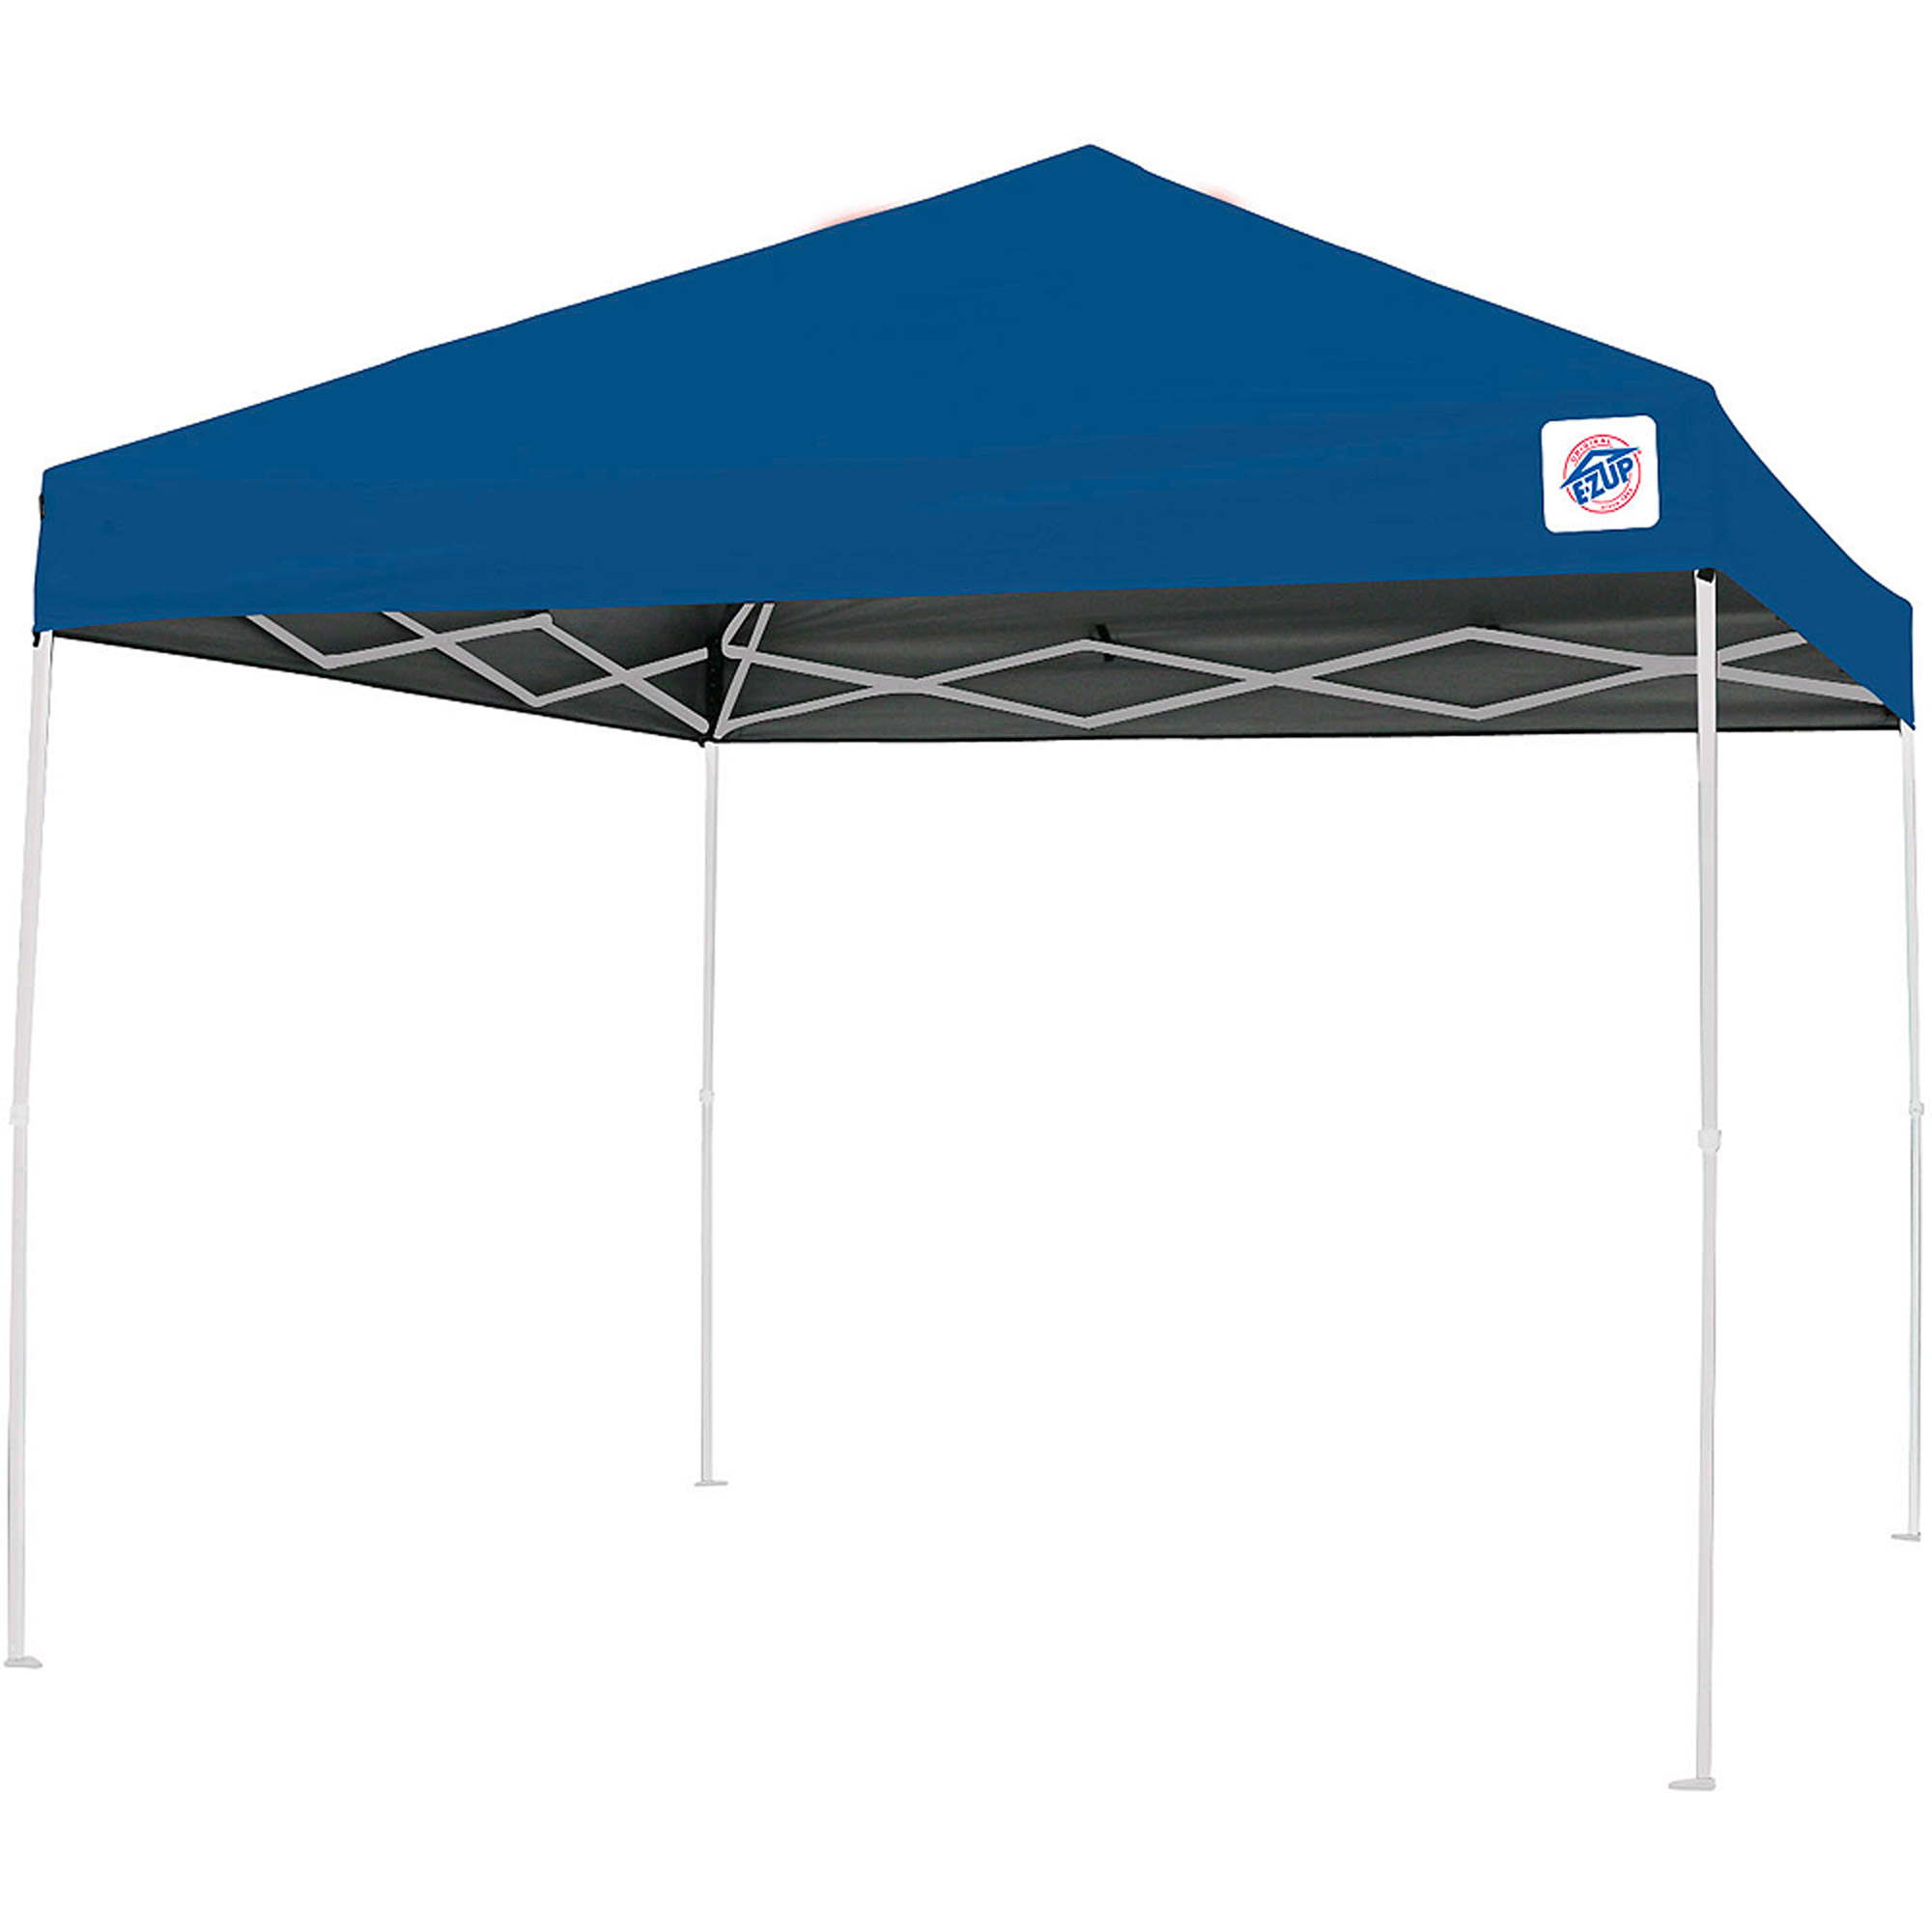 E-Z Up Envoy 10u0027x10u0027 Straight Leg Instant Canopy (100 sq. ft  sc 1 st  Walmart & E-Z Up Envoy 10u0027x10u0027 Straight Leg Instant Canopy (100 sq. ft ...